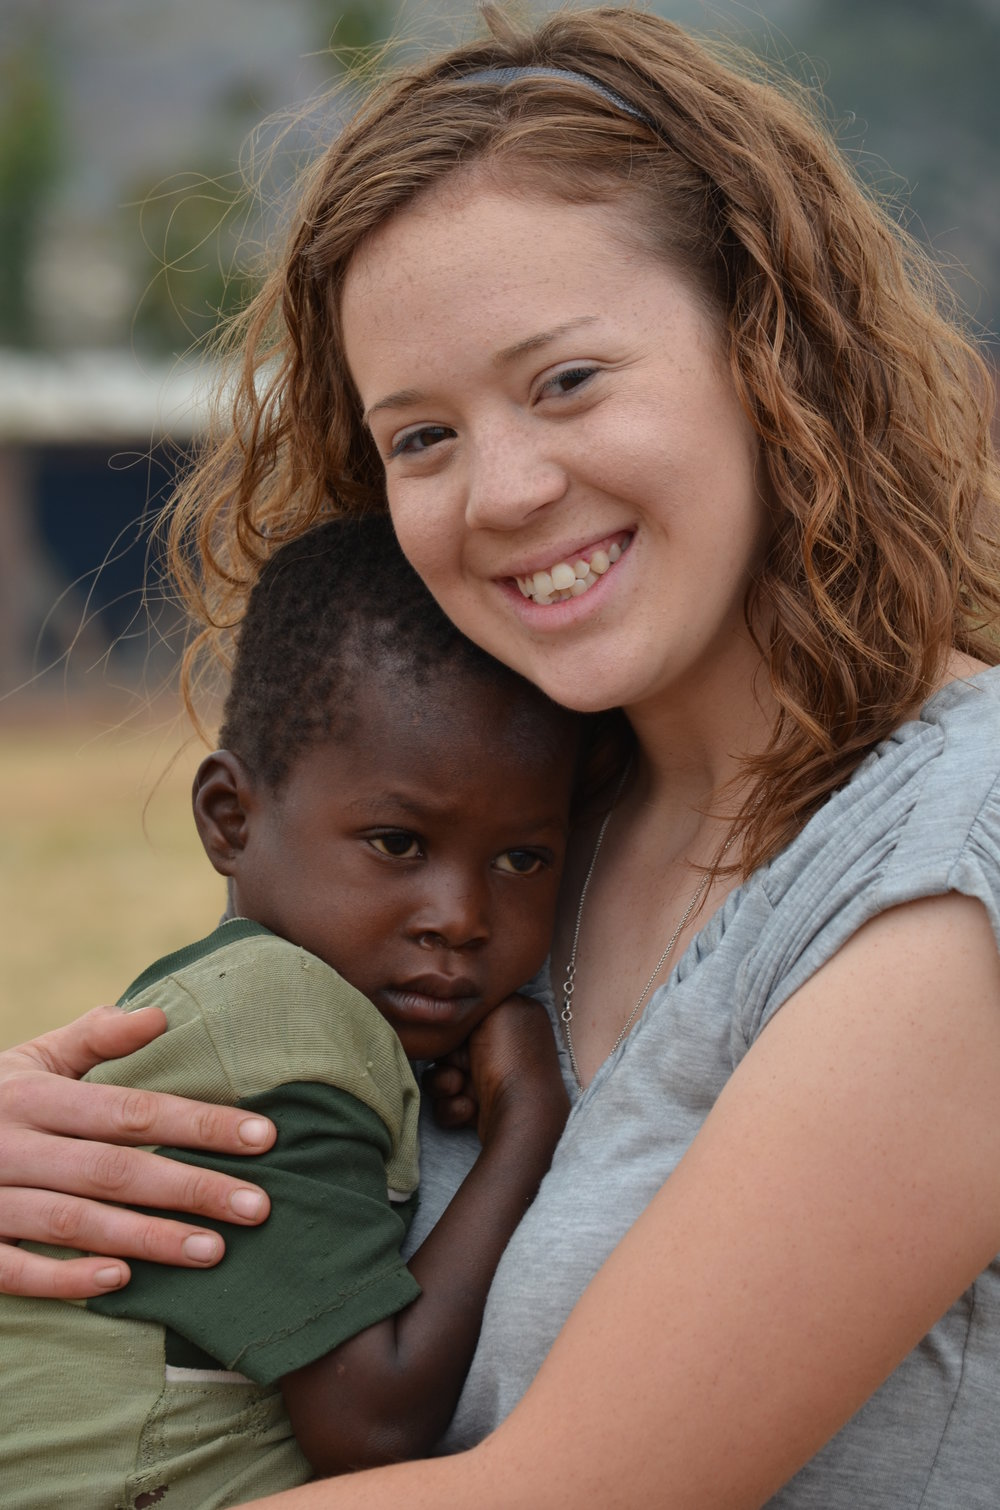 Kaitlyn Miller, 2011, holding another child with severe anemia.